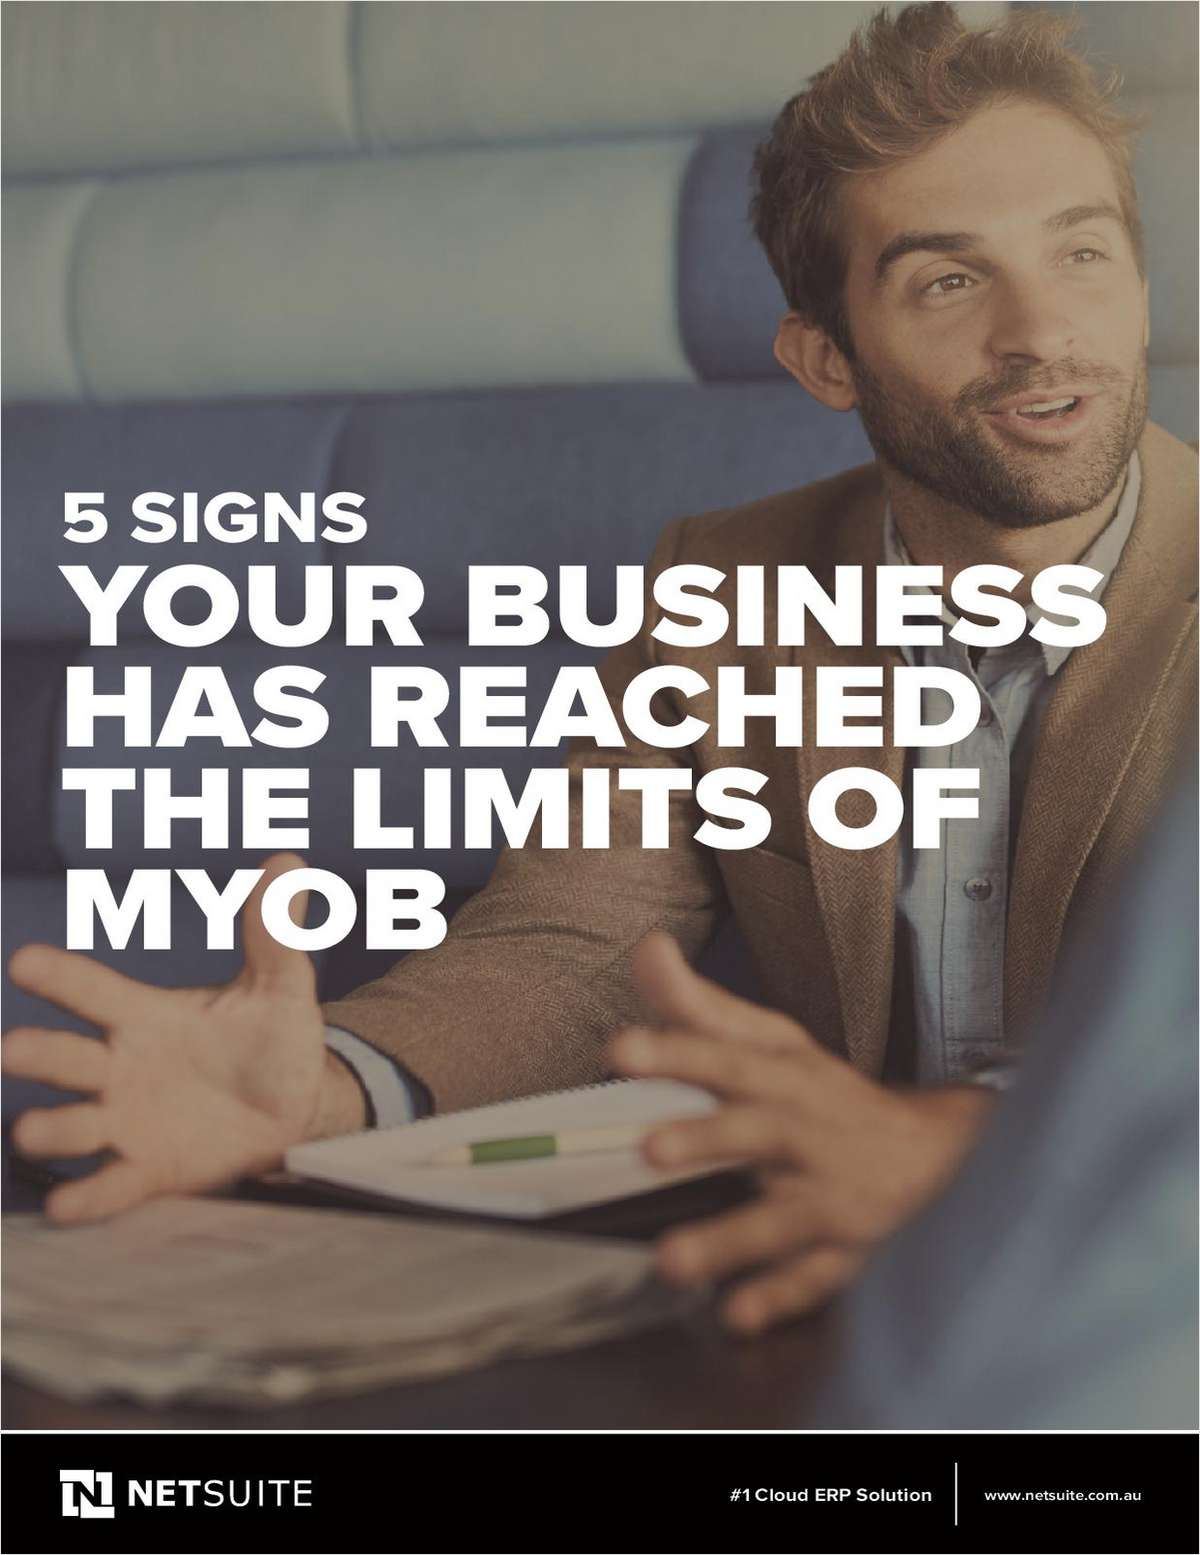 5 Signs Your Business Has Reached the Limits of MYOB